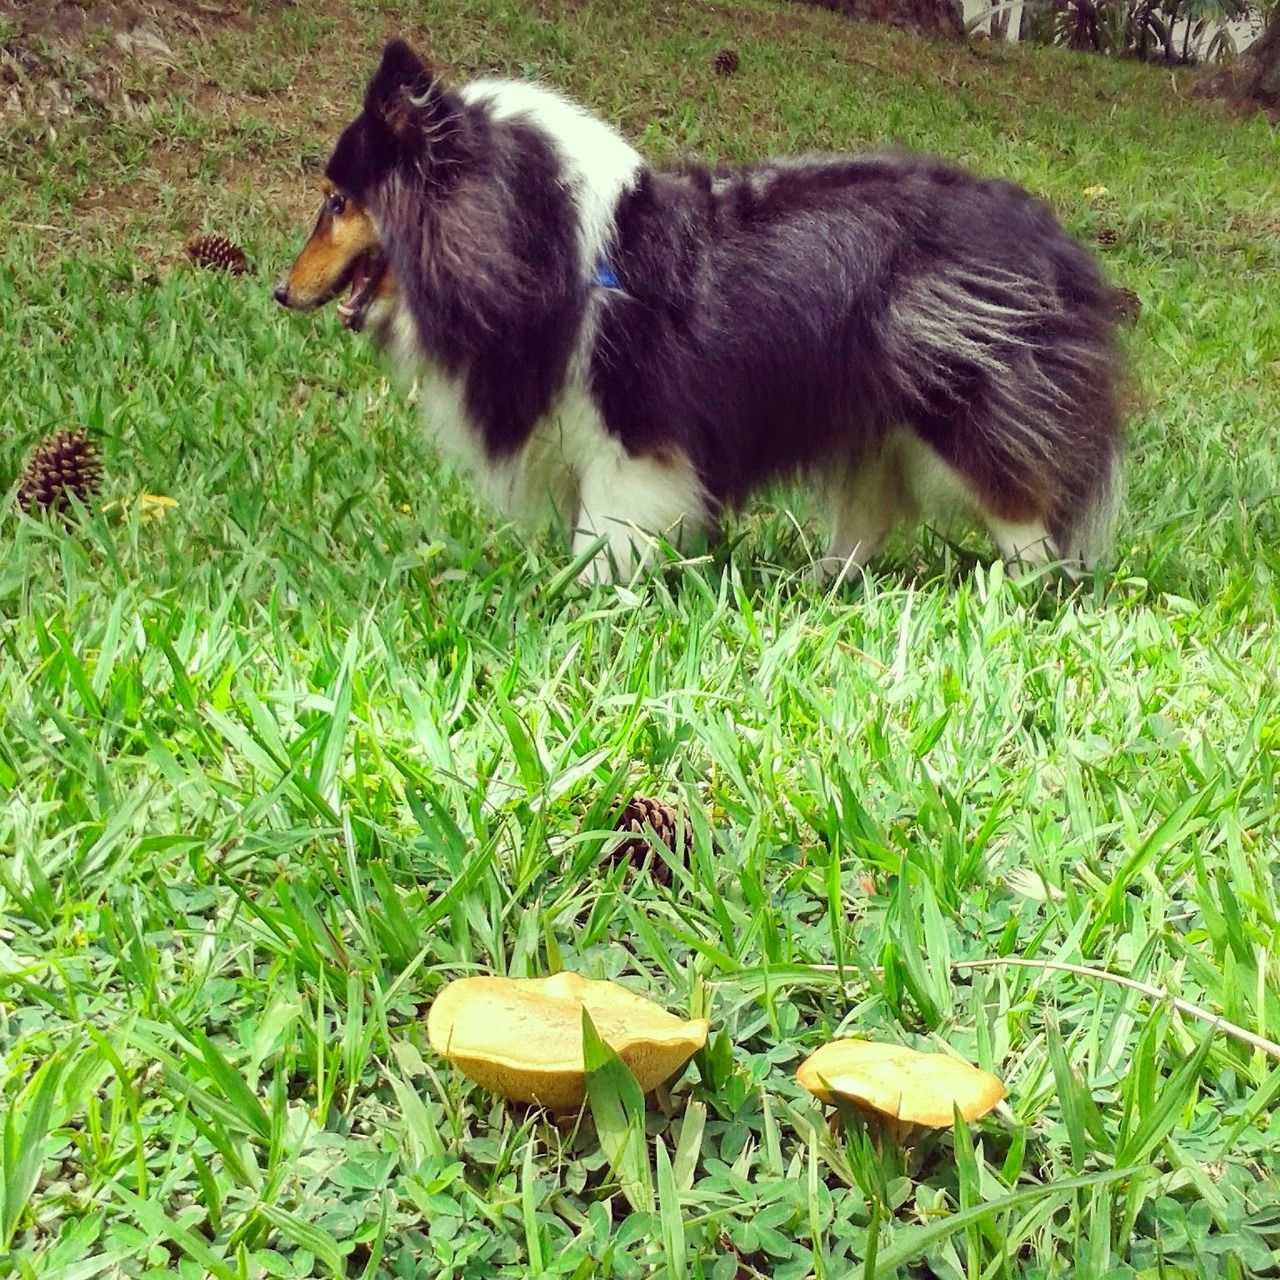 https://www.tumblr.com/indash_blog/peepr/sheltiesfriends